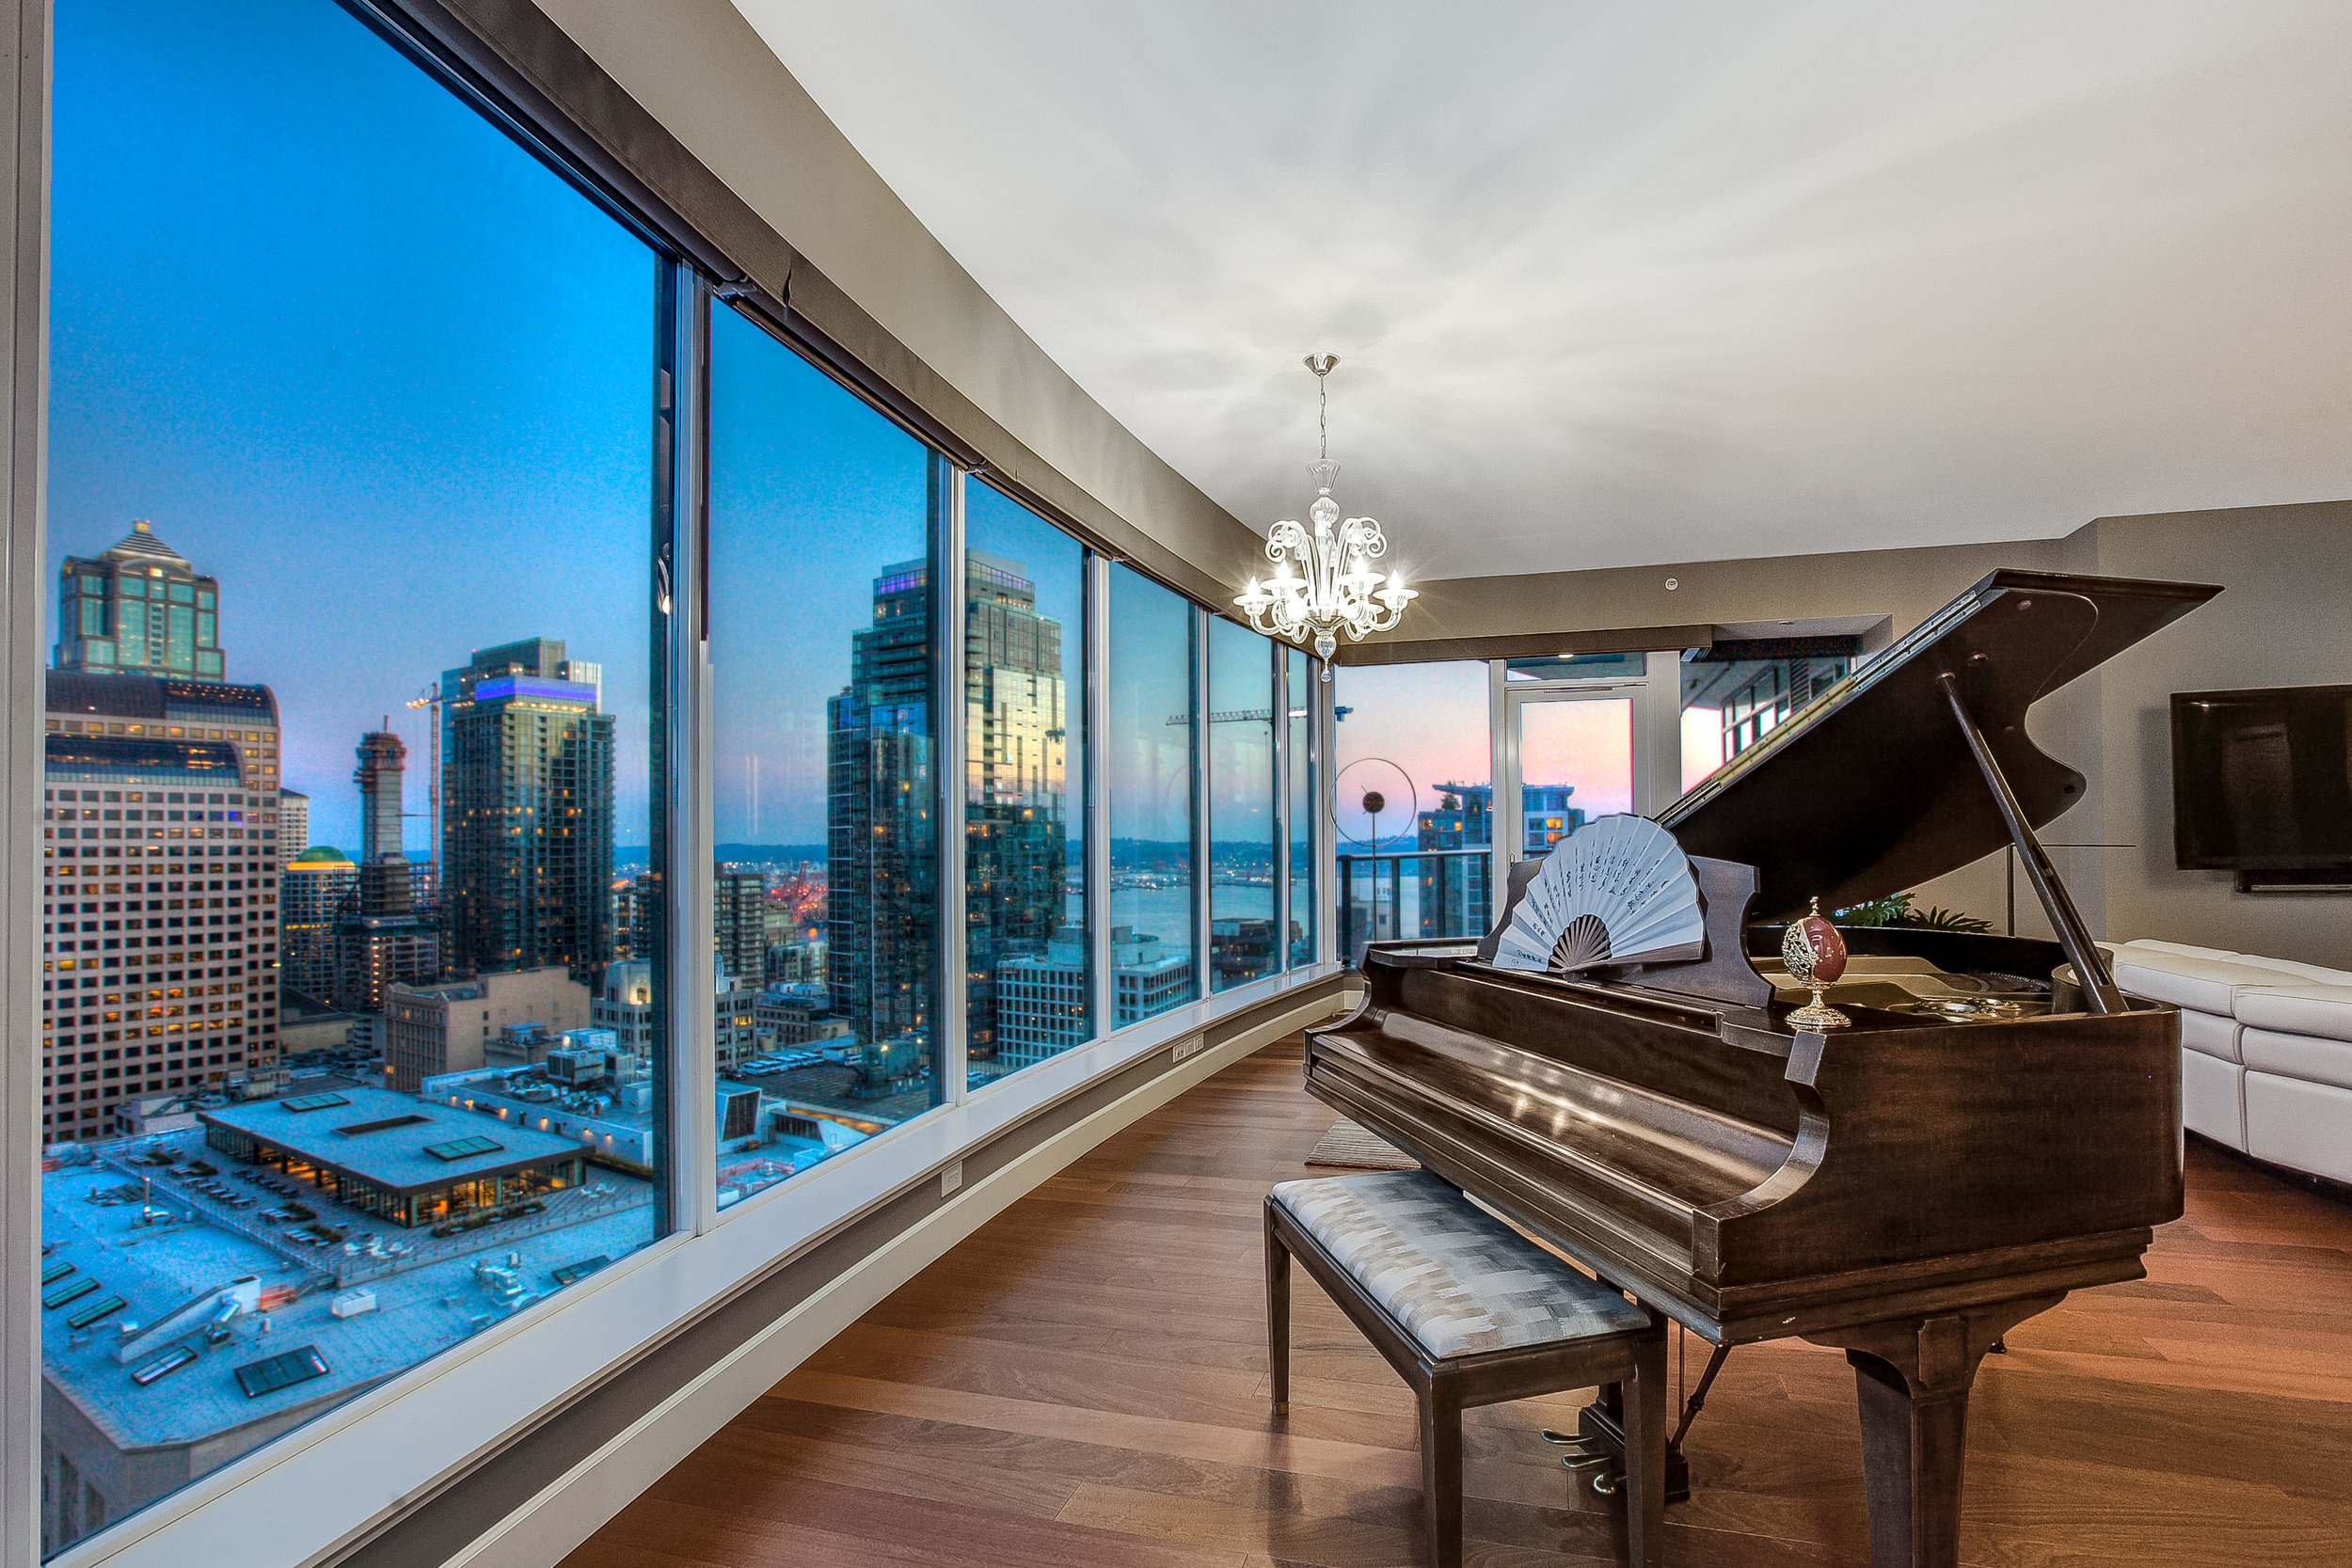 SOLD | ESCALA # 2405 - 2 Bedroom, 2 Bathrooms, 1,988 Square Feet2 Parking Space, 1 Storage UnitSOLD at $2,200,000